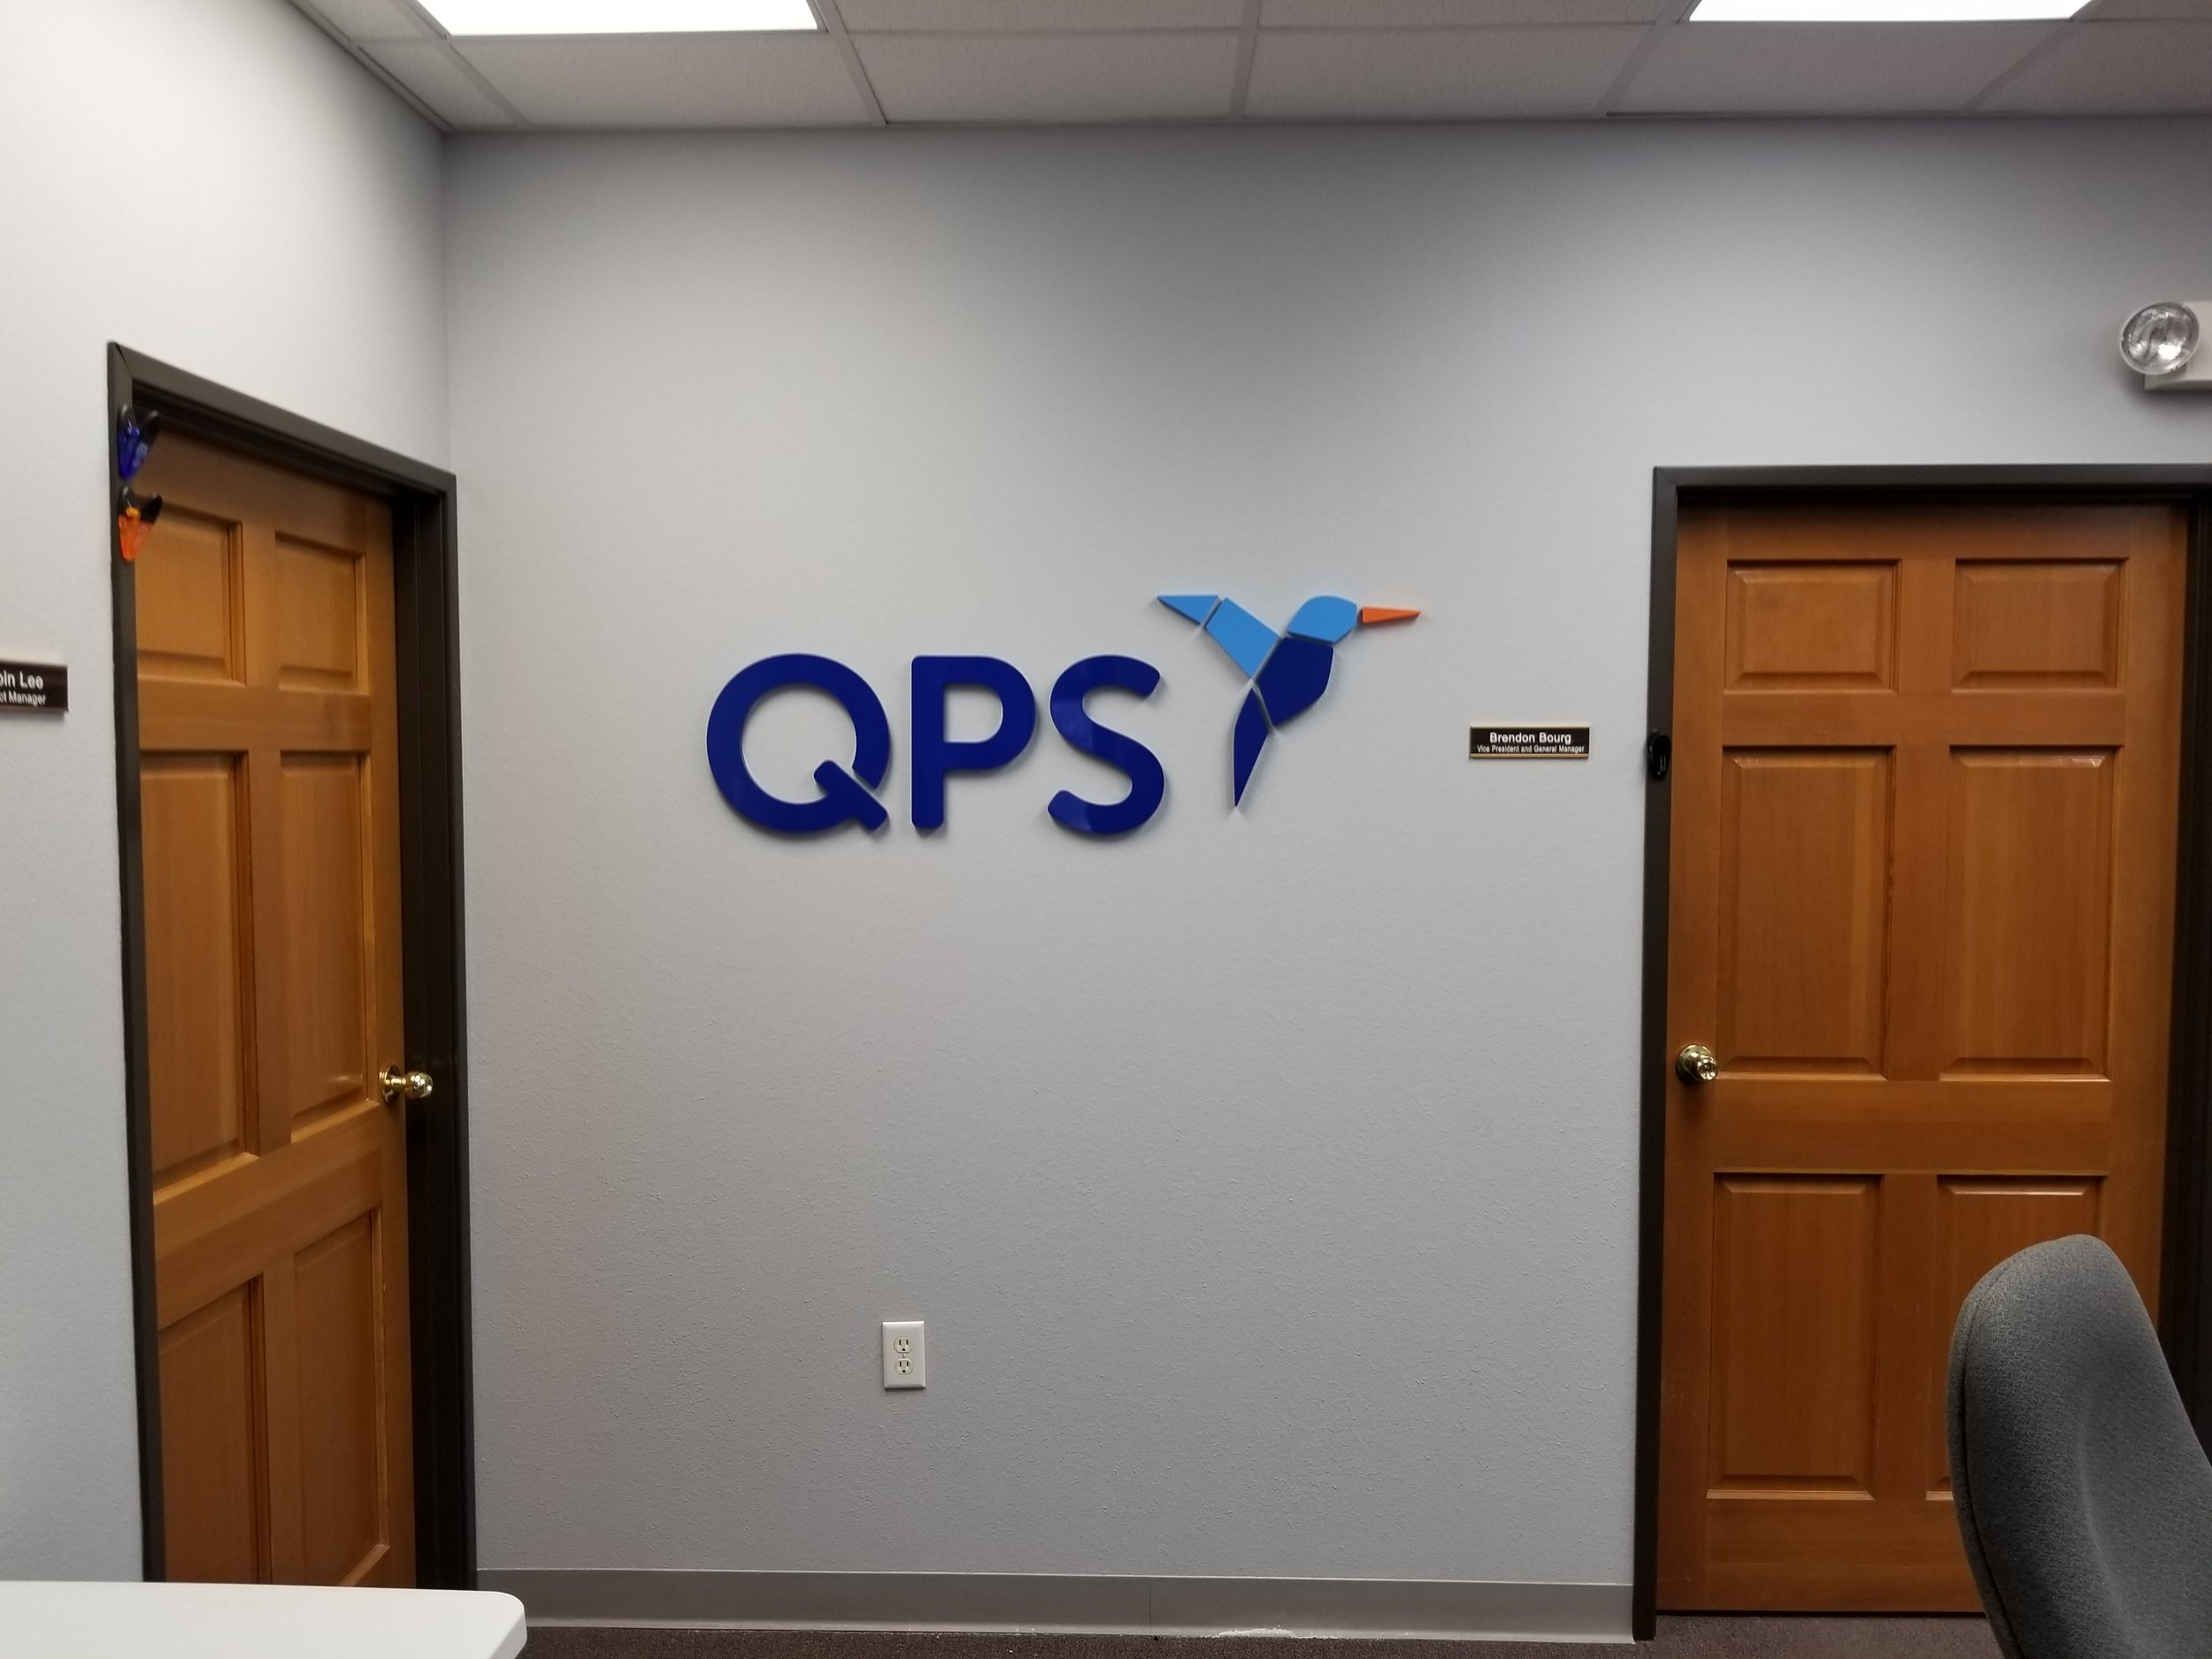 QPS - Updated wall sign